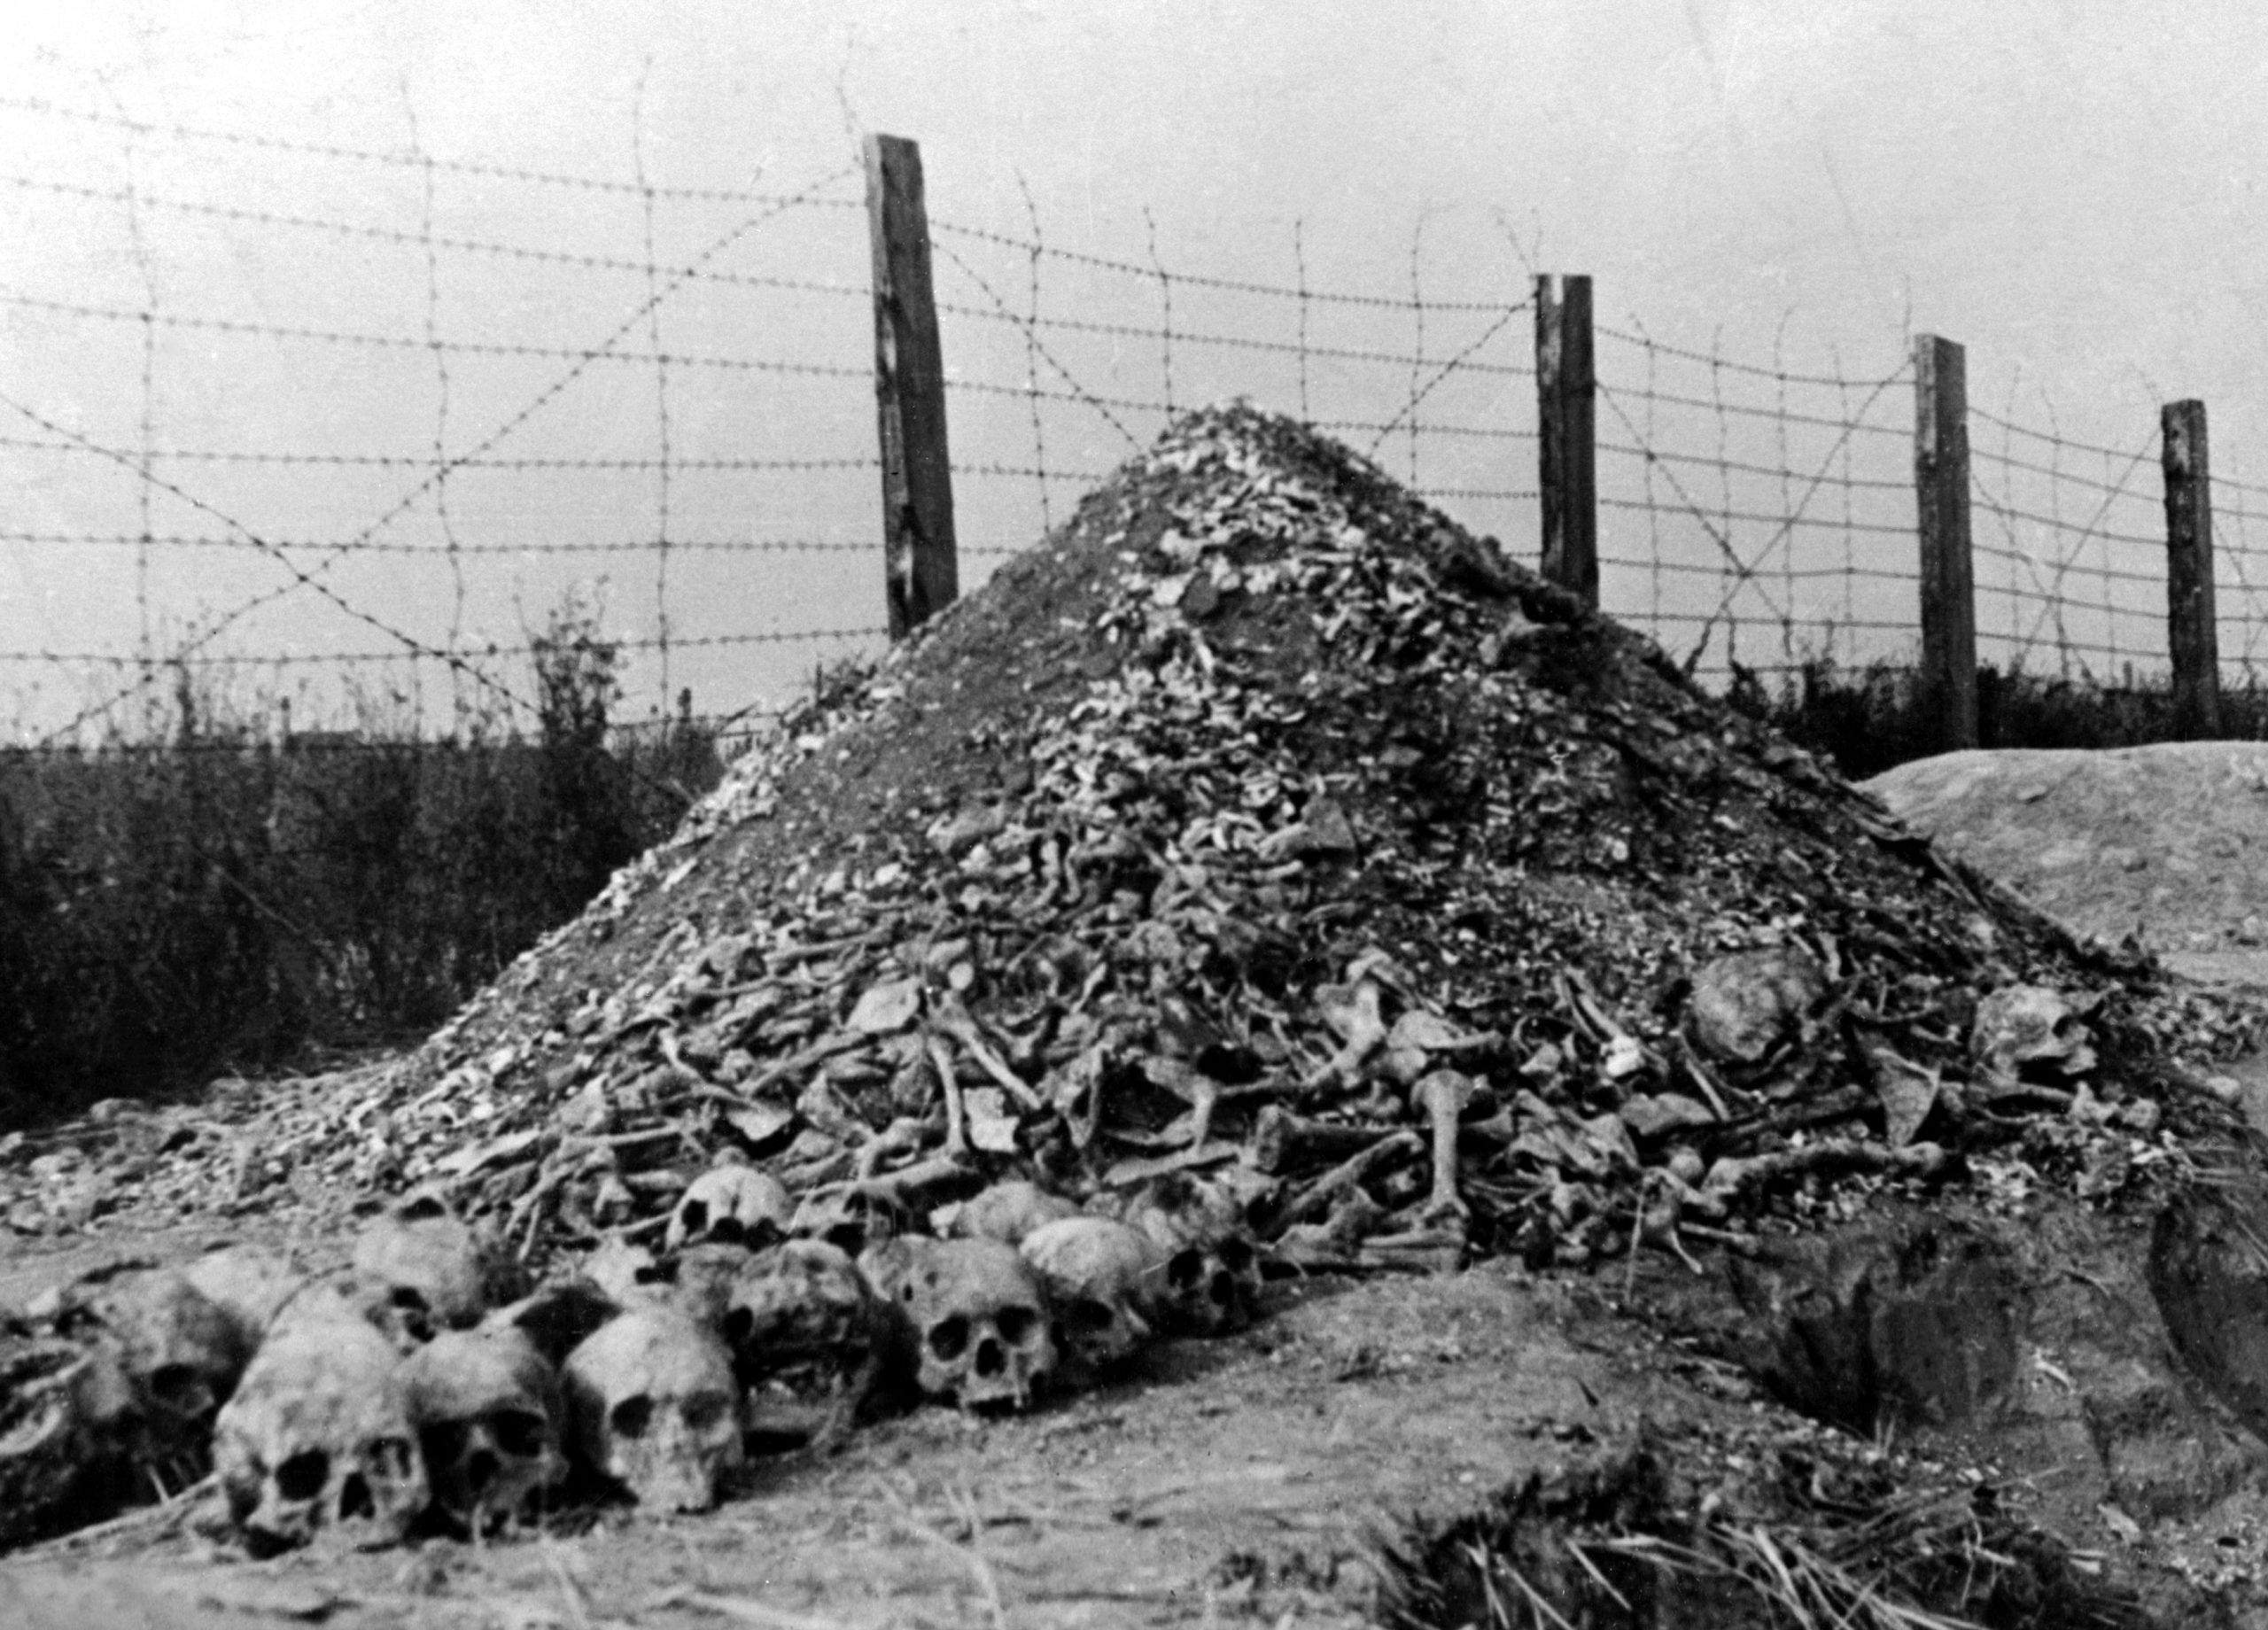 A pile of human bones and skulls is seen in 1944 at the Nazi concentration camp of Majdanek in the outskirts of Lublin, the second largest death camp in Poland after Auschwitz, following its liberation in 1944 by Russian troops. (AFP via Getty Images)